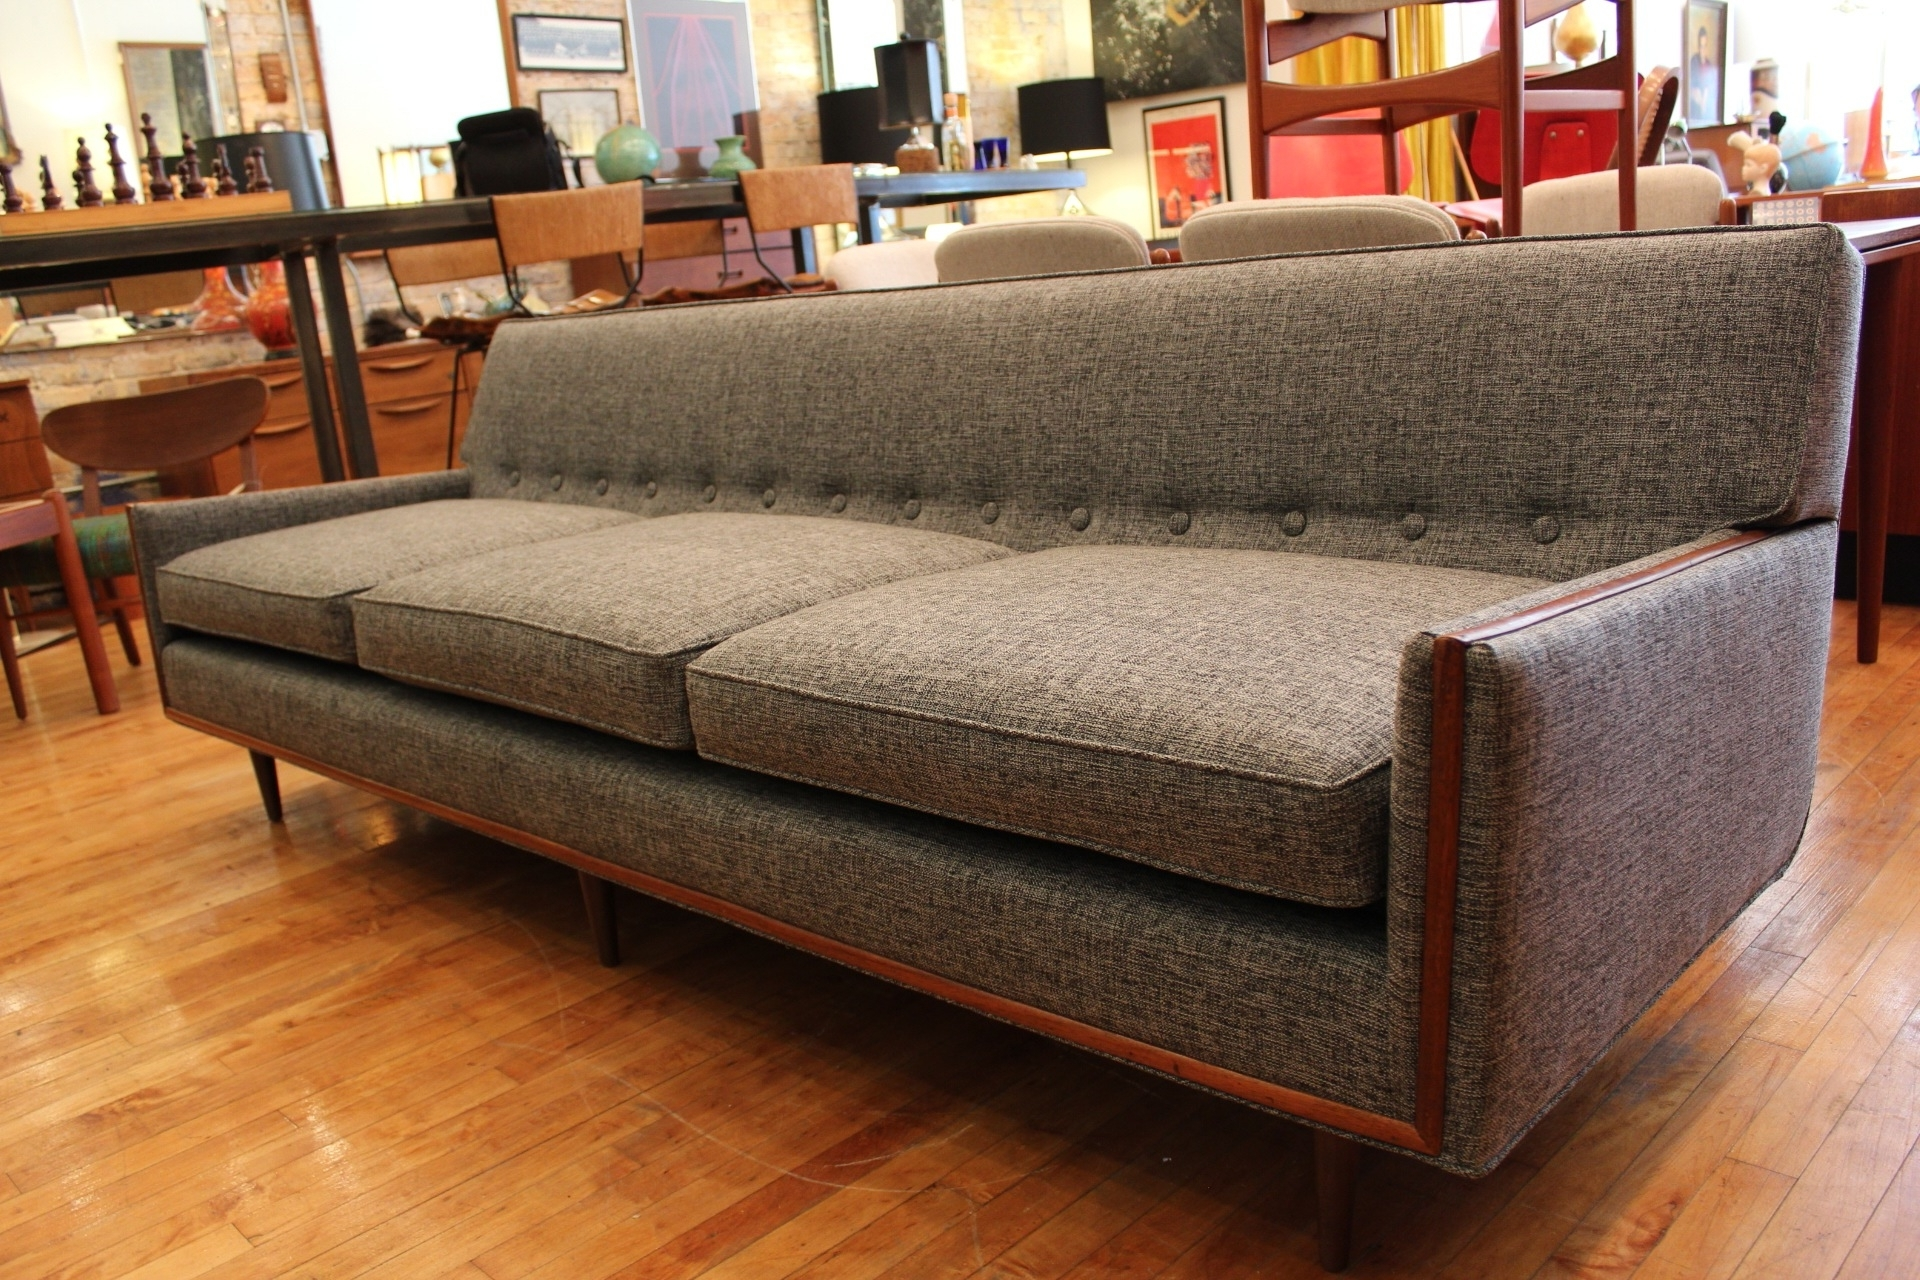 Duluthhomeloan With Regard To Vintage Sectional Sofas (View 5 of 15)